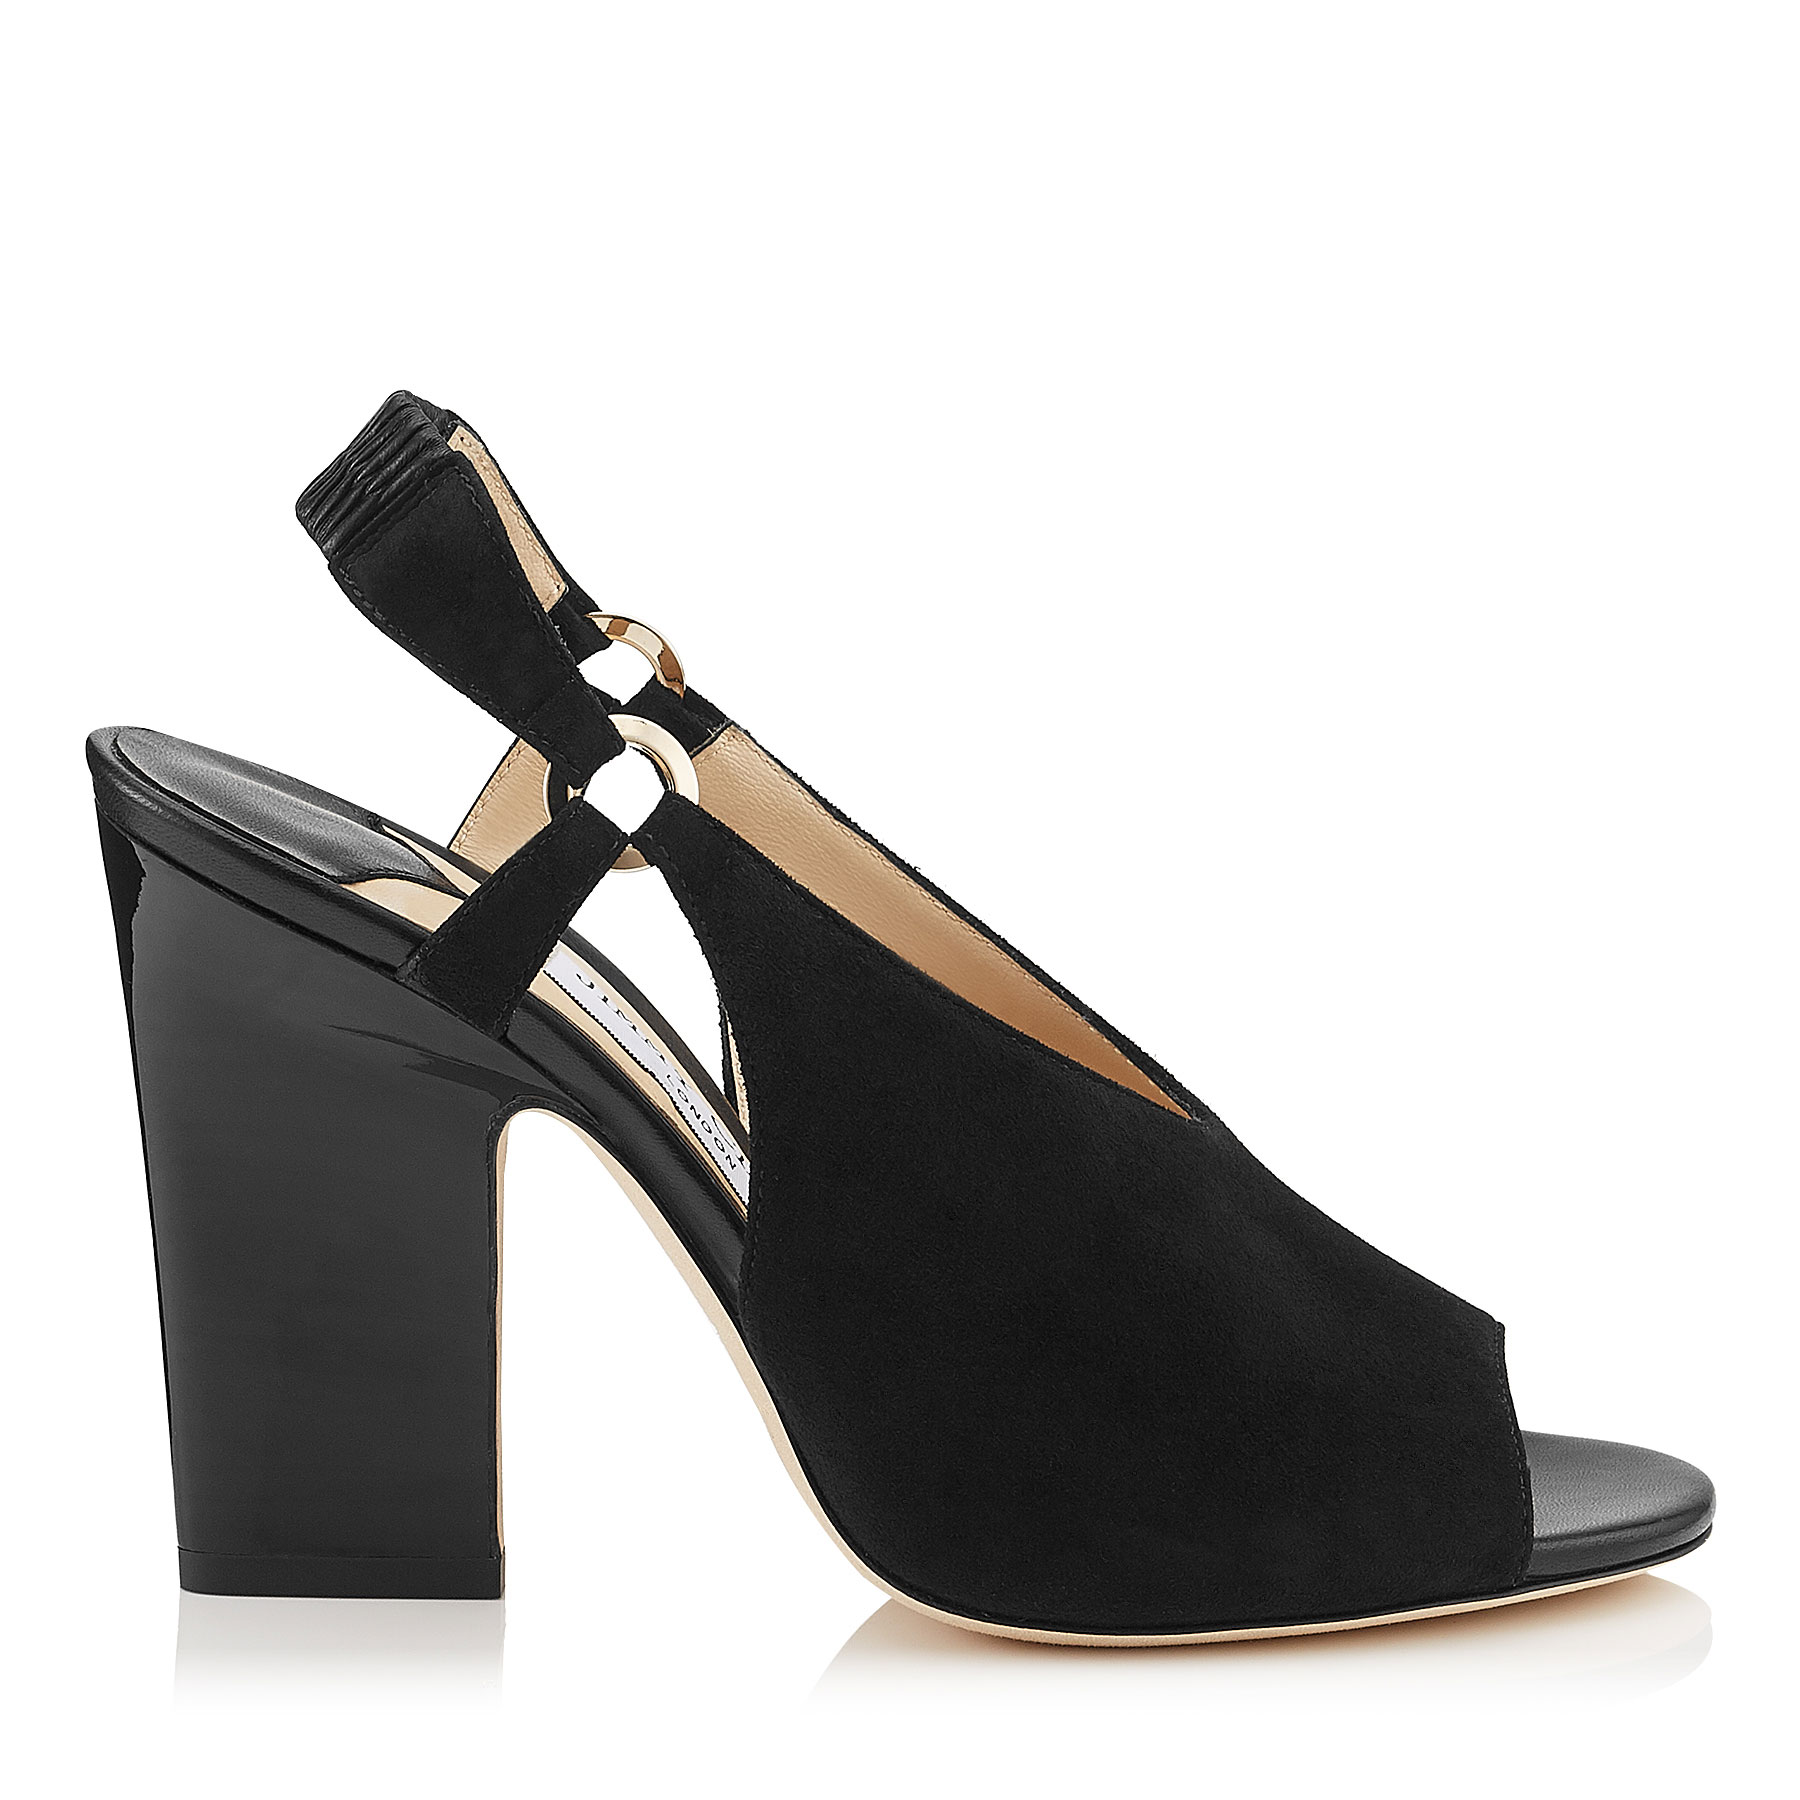 HANSA 100 Black Suede and Nappa Leather Ankle Sandals by Jimmy Choo